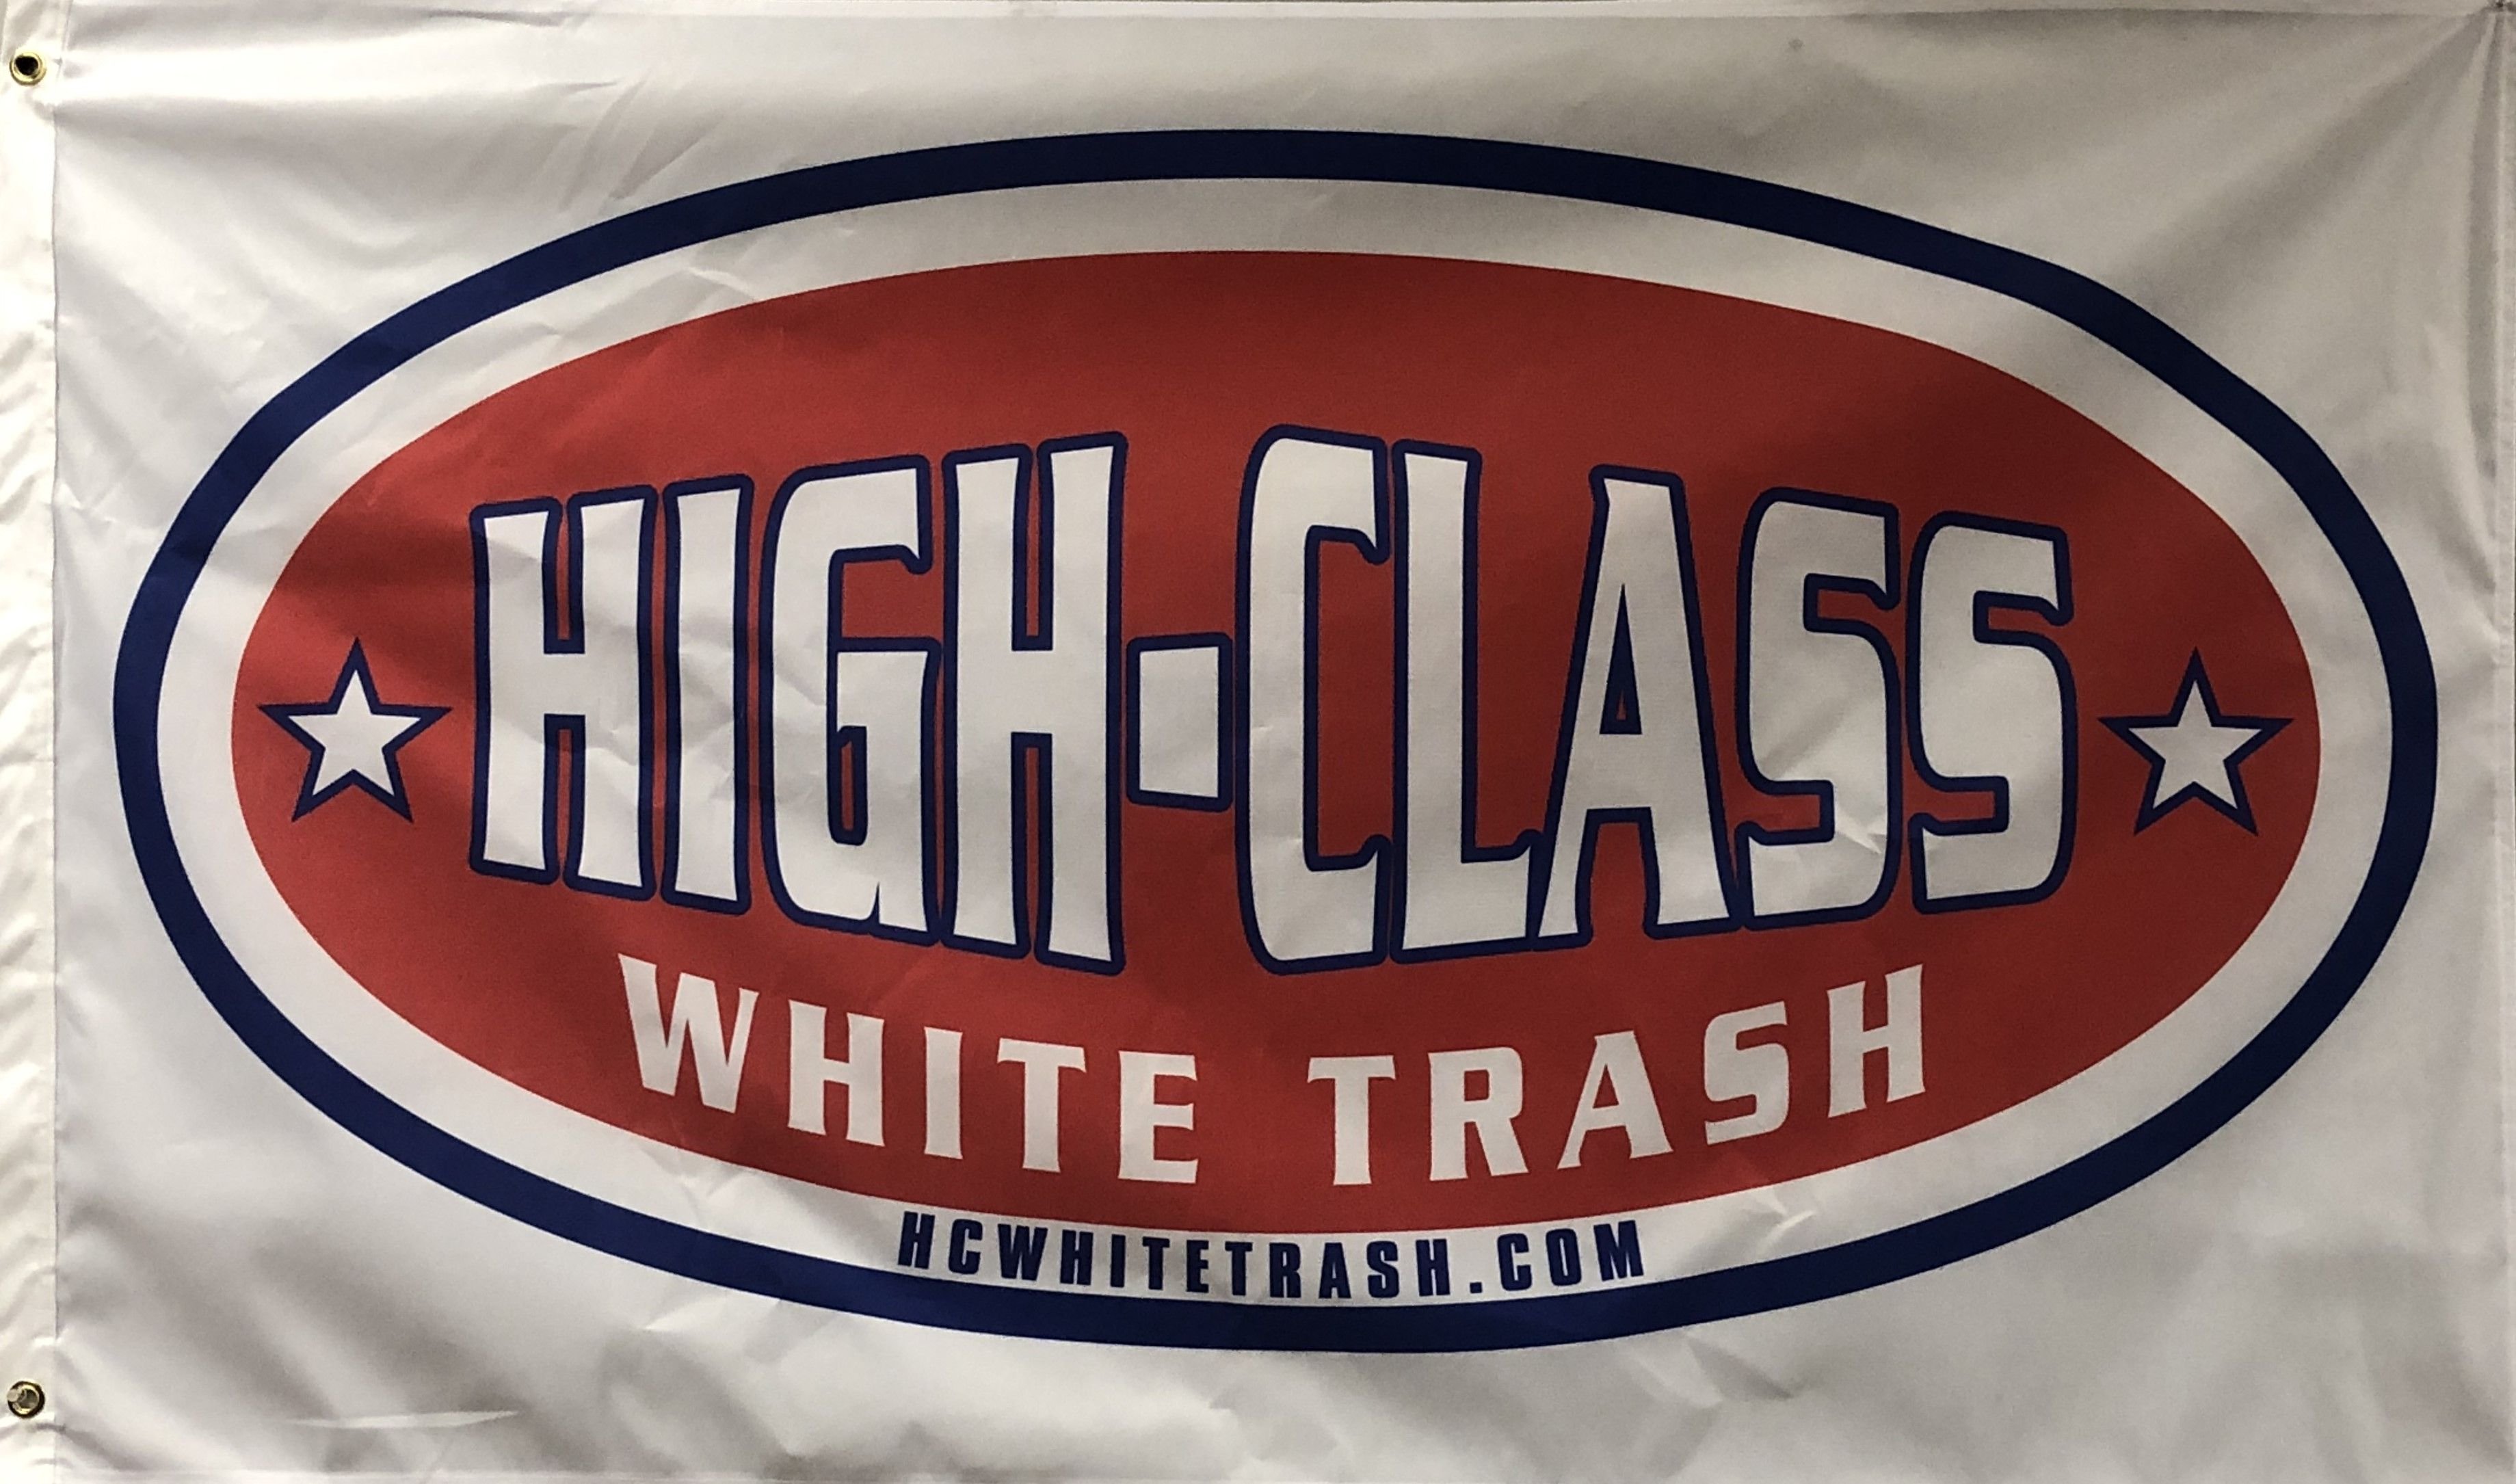 Get the official HCWT Flag. MADE IN U.S.A. Single Sided HCWT Flag. Made of durable HEAVYWEIGHT knit polyester this HCWT flag is made for long lasting OUTDOOR use. The canvas heading is reinforced with brass grommets. Flag color is white.  Join the HCWT Movement! #highclasswhitetrash #apparel #clothing #redneck #camping #fishing #hunting